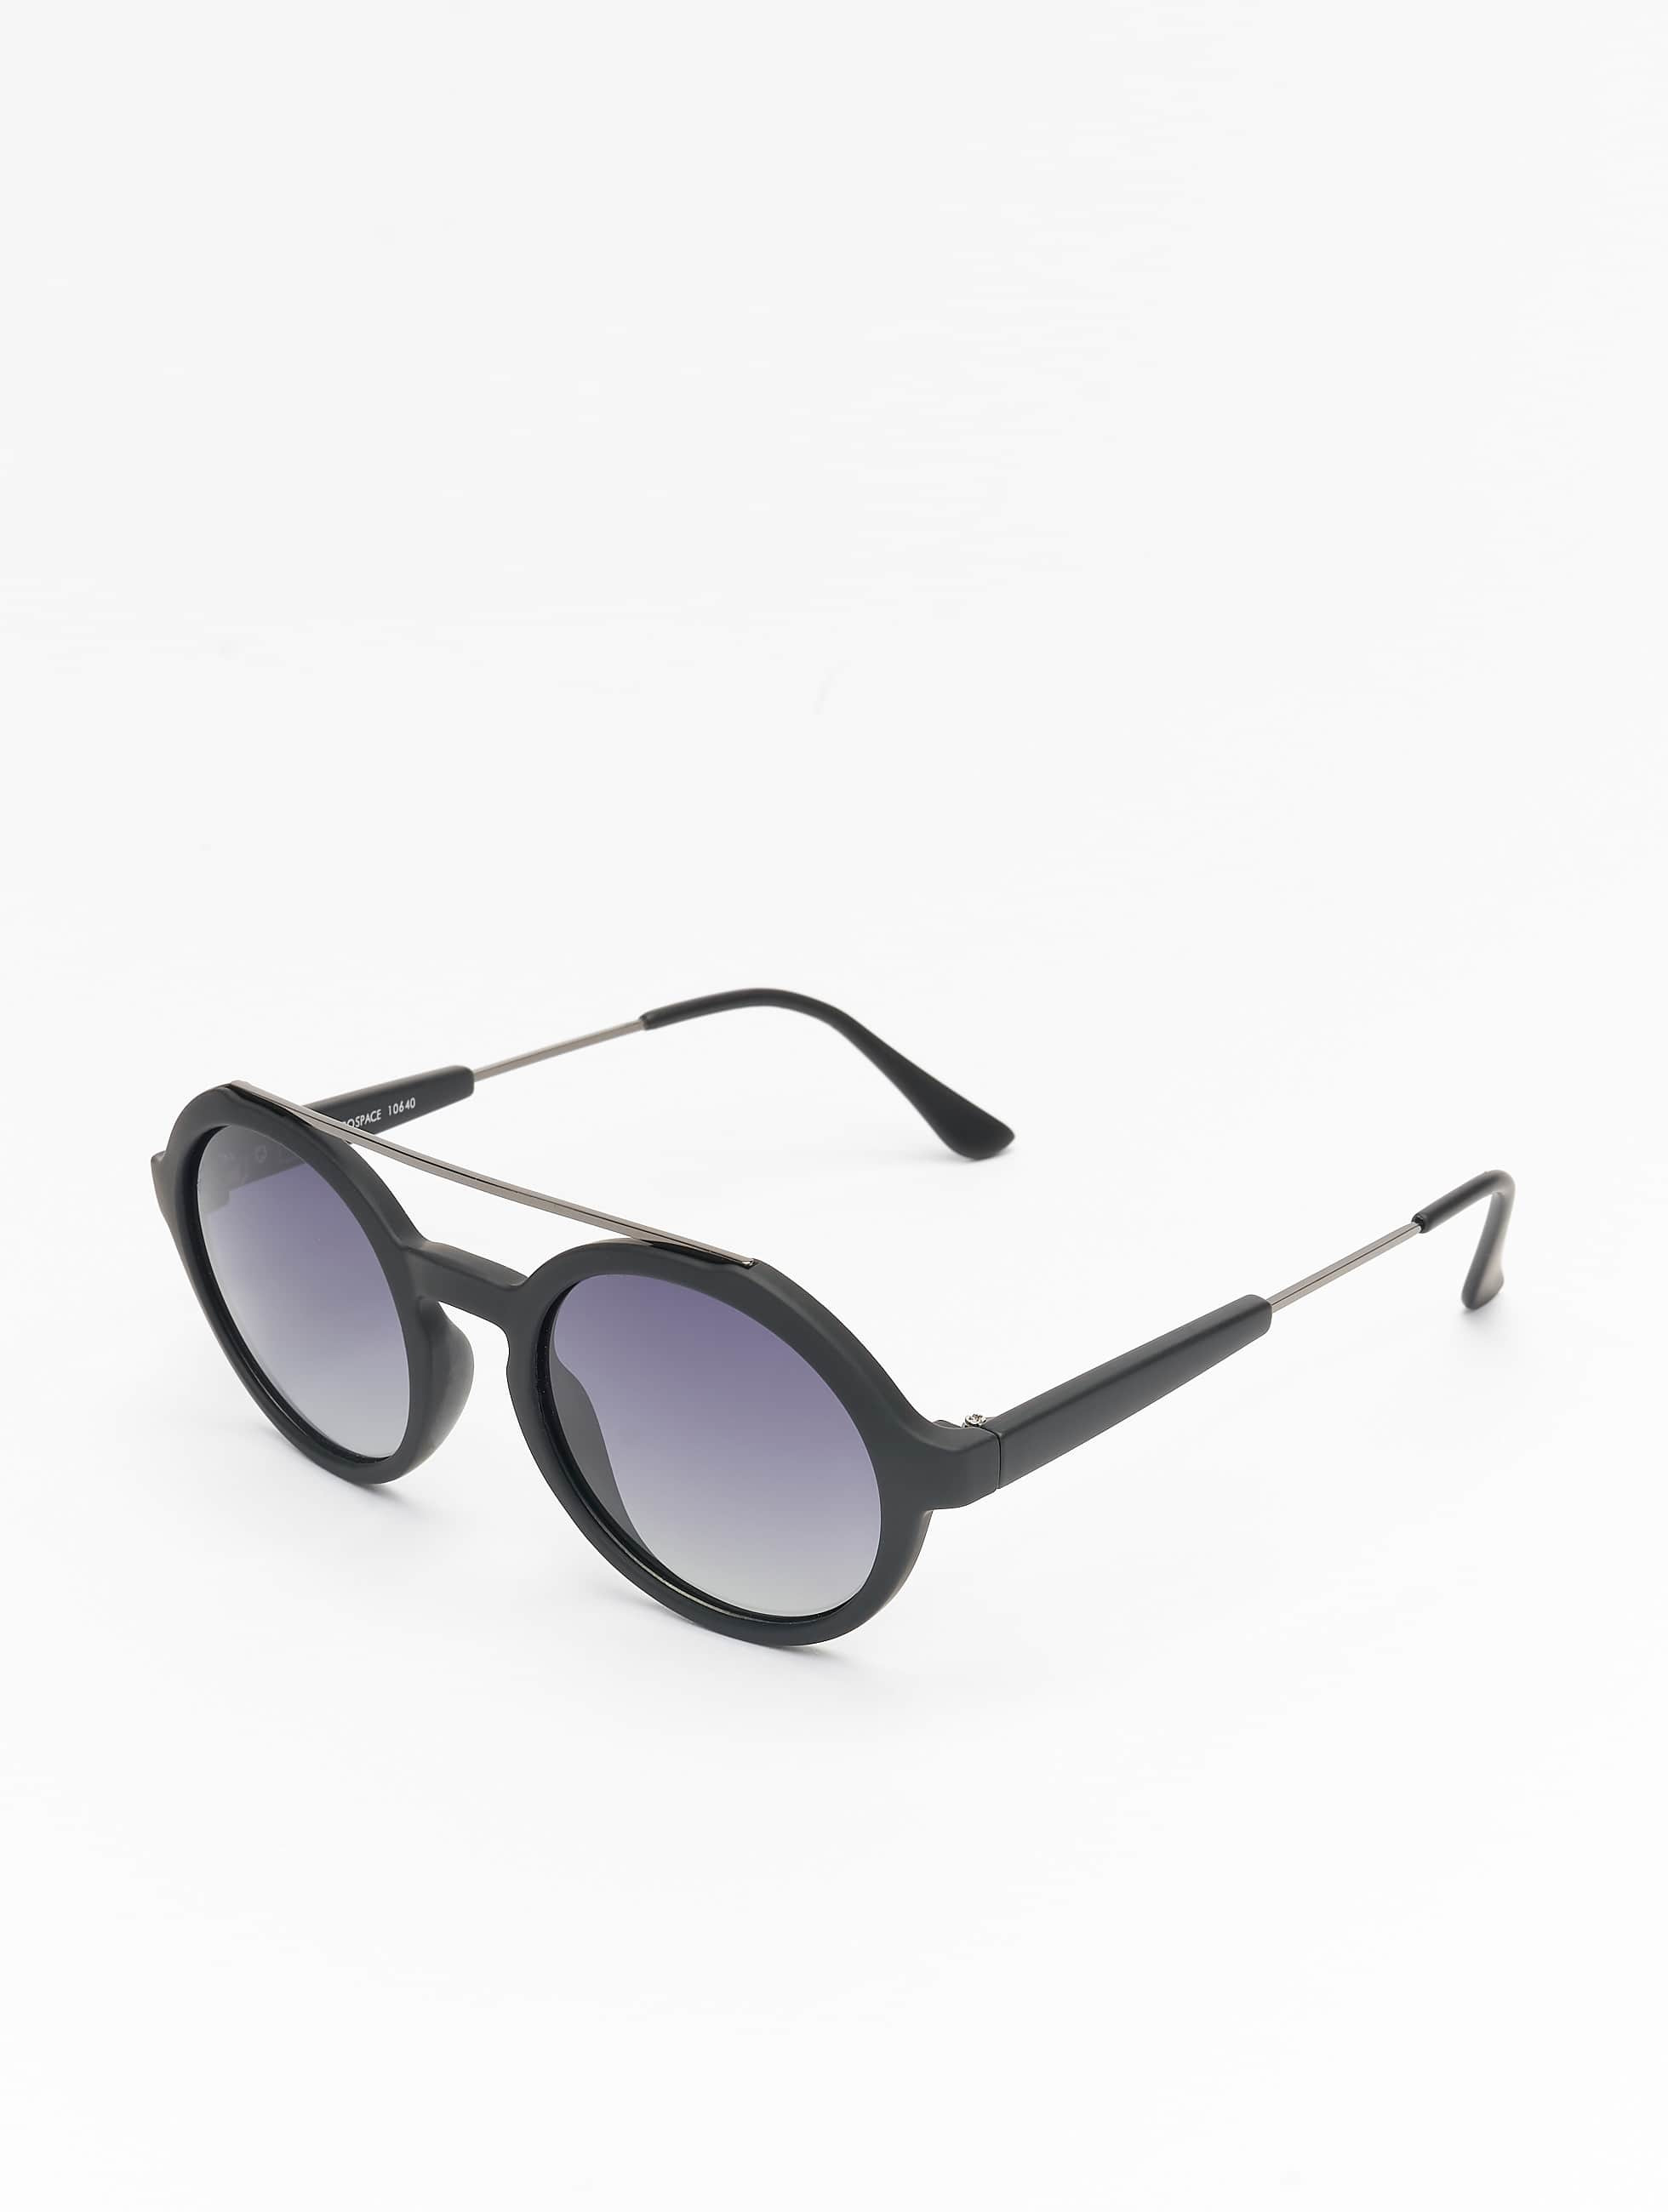 Sonnenbrille Retro Space Polarized Mirror in schwarz